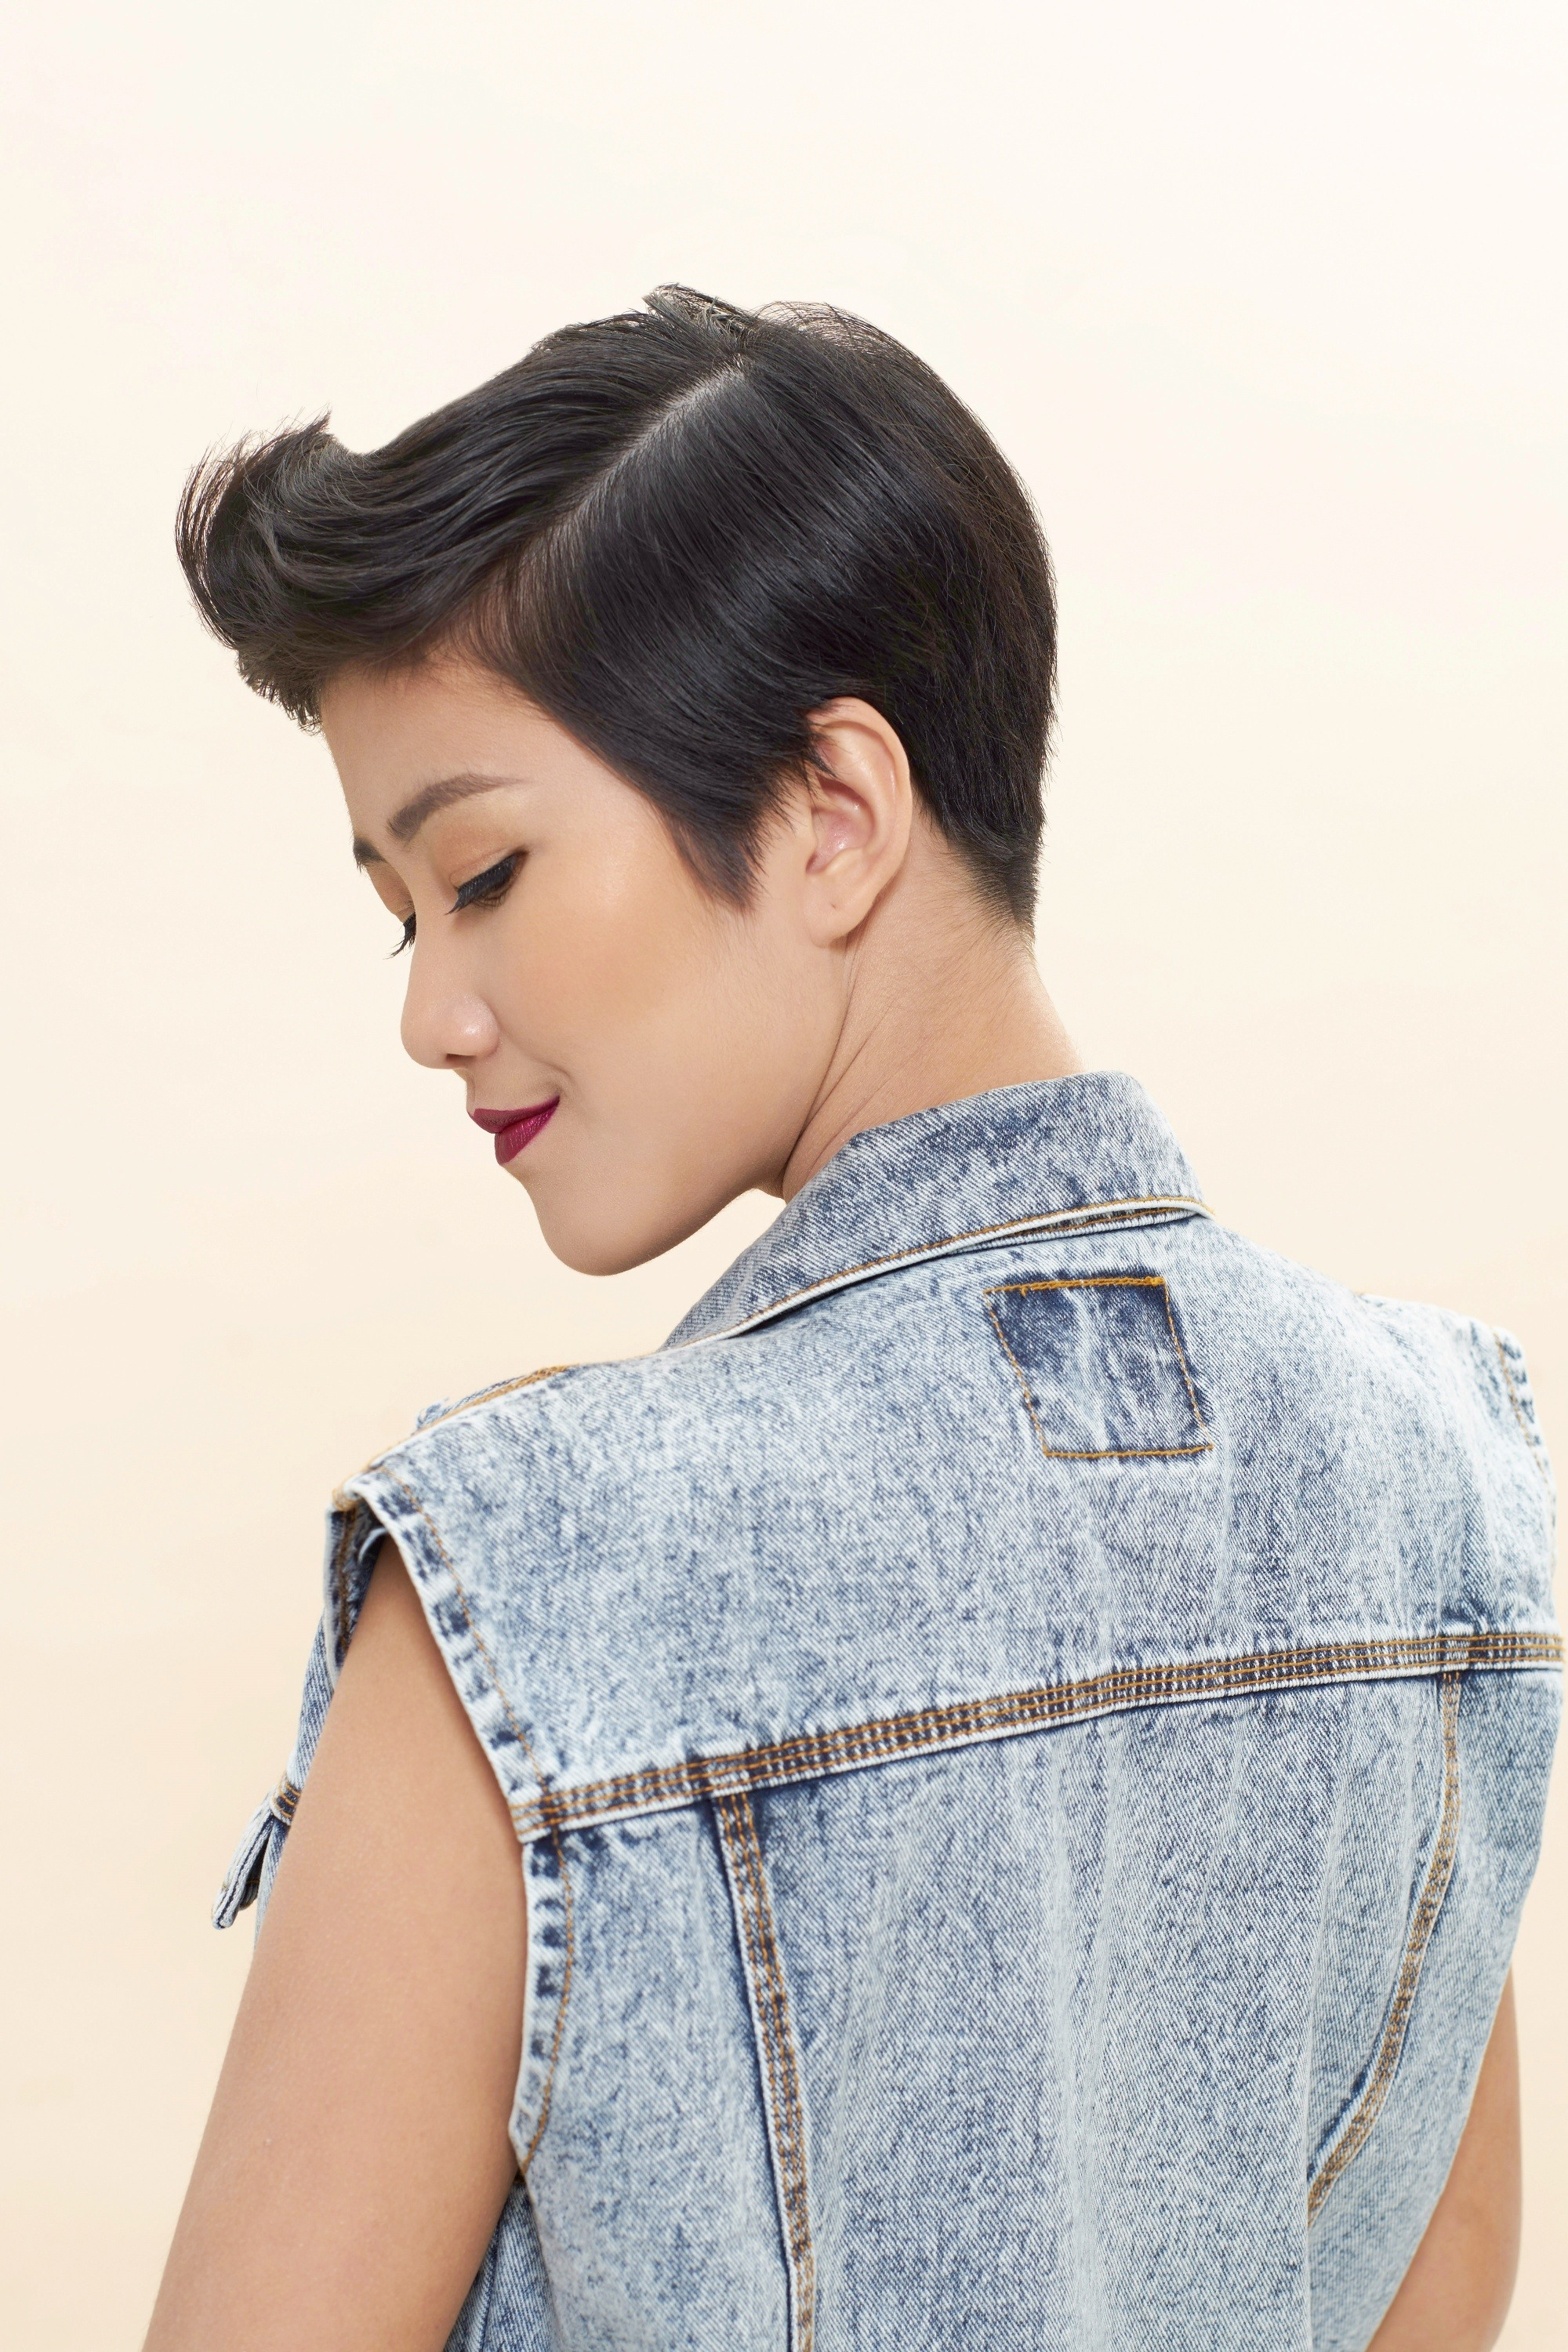 Asian woman with pixie cut with quiff wearing a sleeveless denim vest